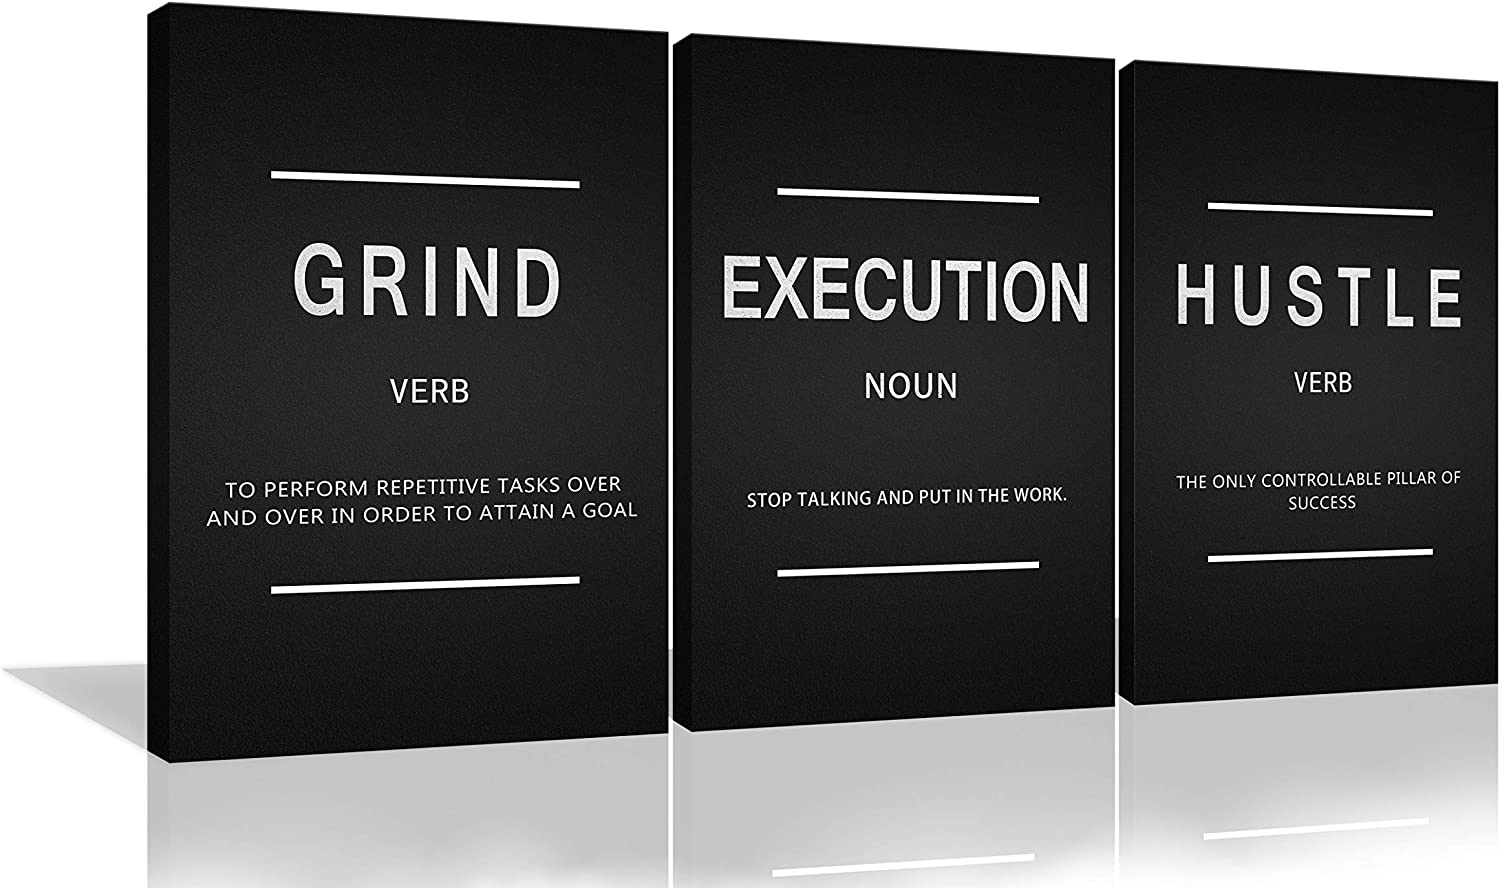 Large Success Quote Inspirational Wall Art Motivational Grind Hustle Execution Painting Entrepreneur Office Posters Prints Canvas Artwork 3 Panels Wall Decor for Office Framed Ready to Hang- 24